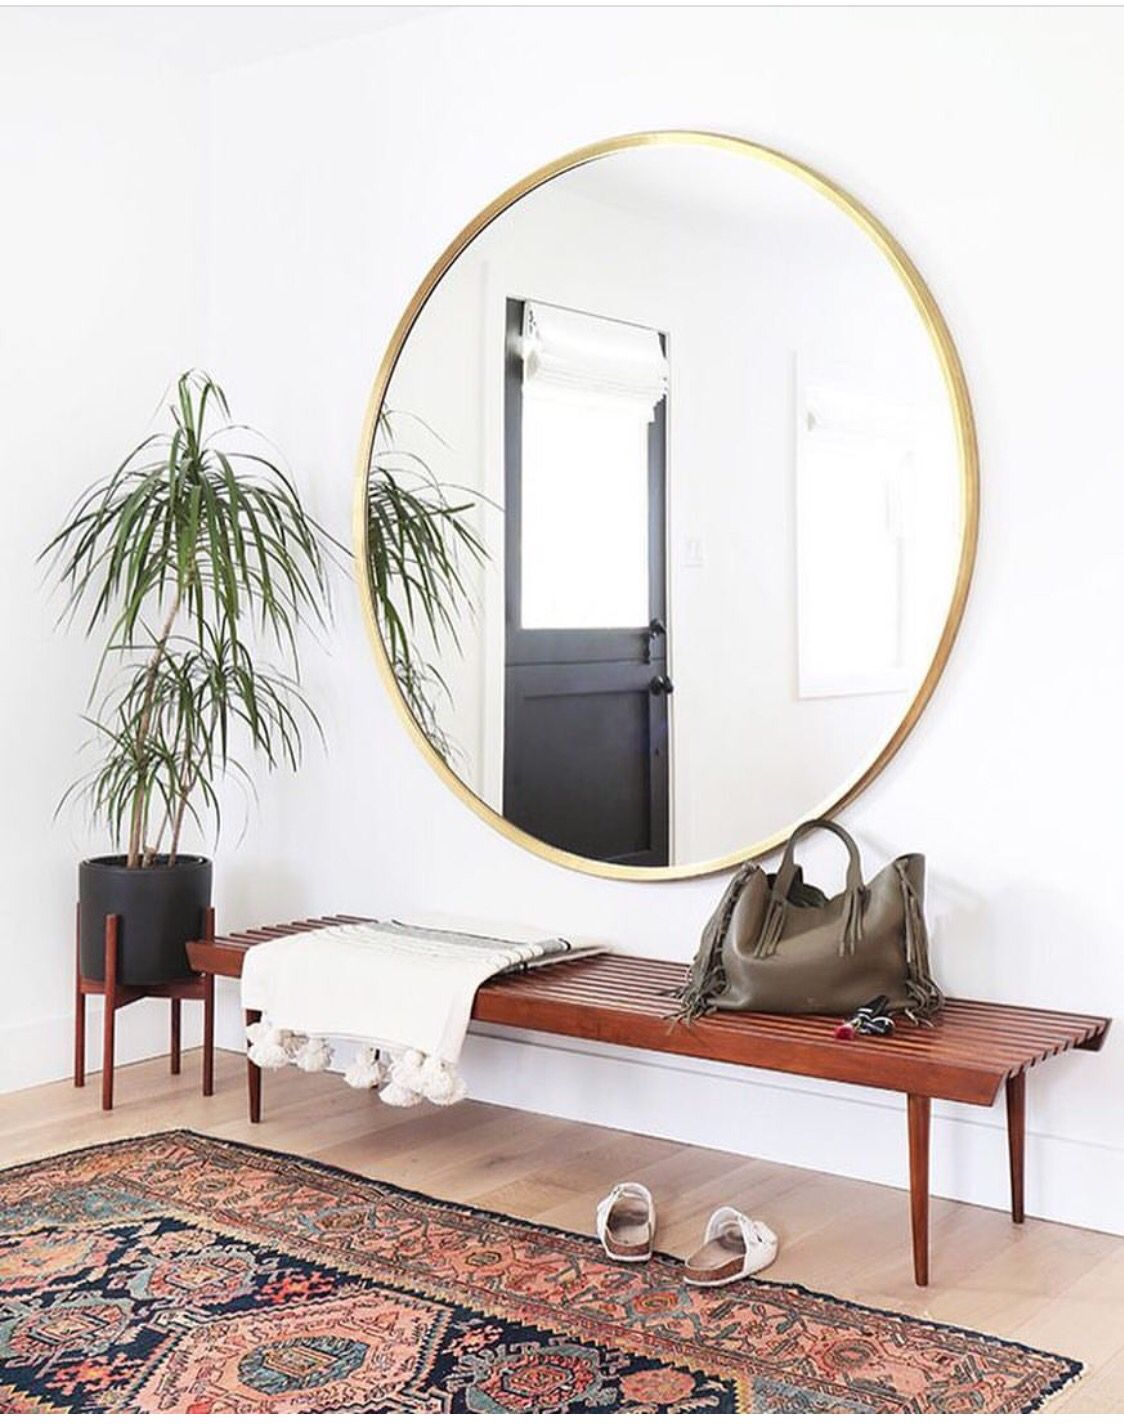 Hallway furniture for small space  Pin by Ursula Weiland on space to live loft living  Pinterest